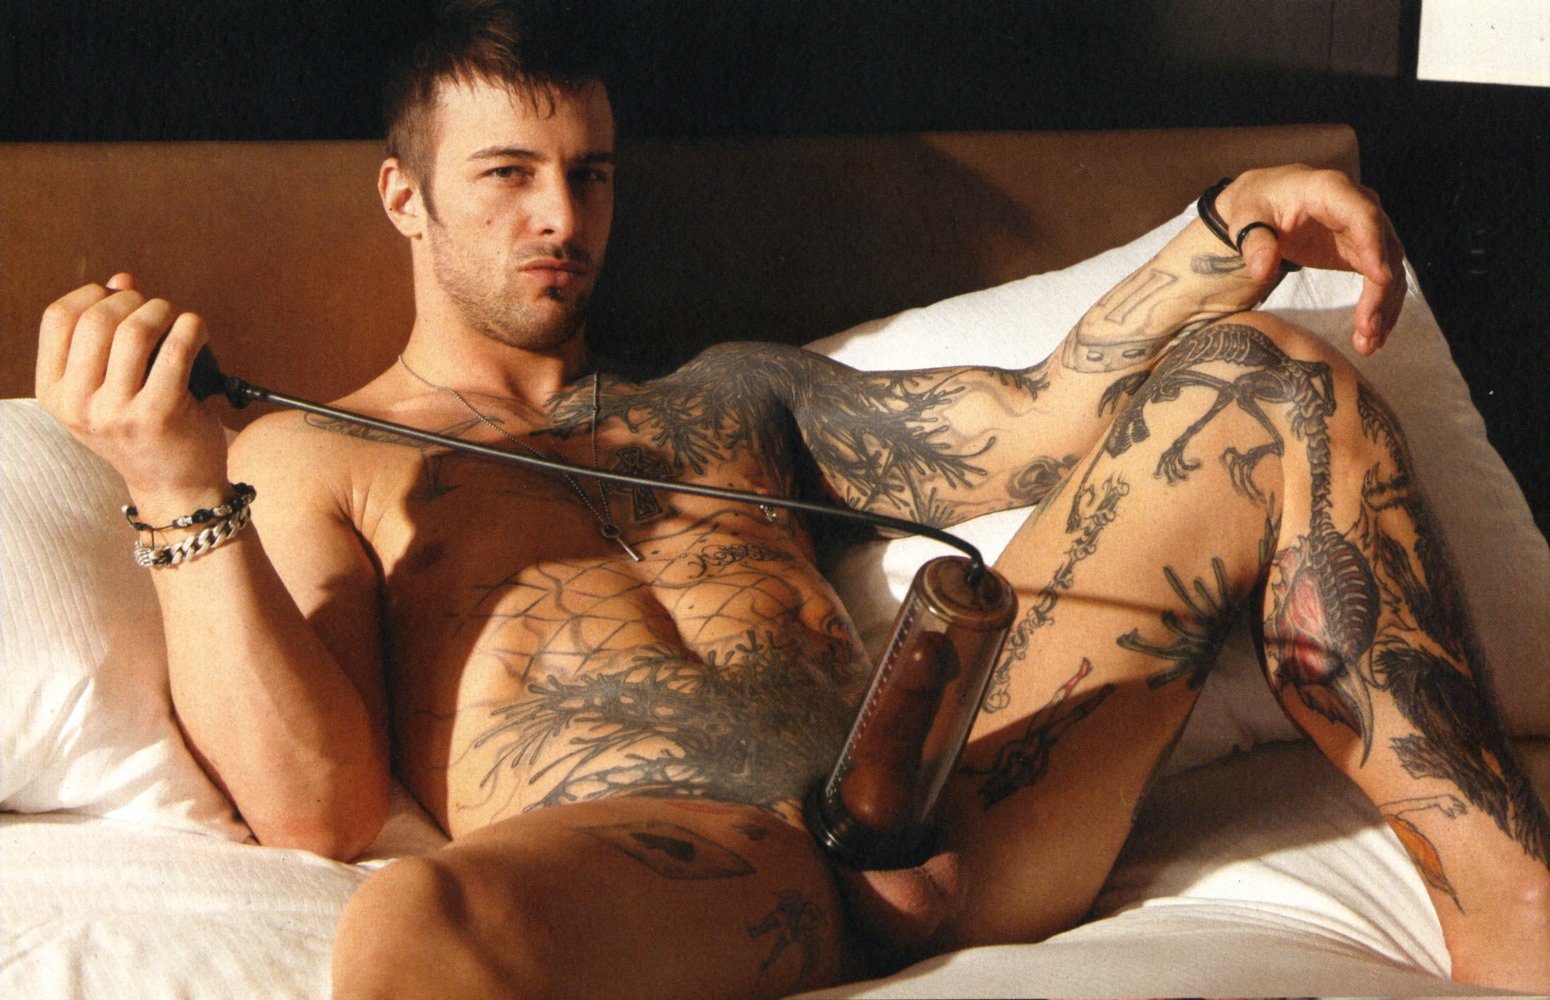 For nick hawk playgirl nude that